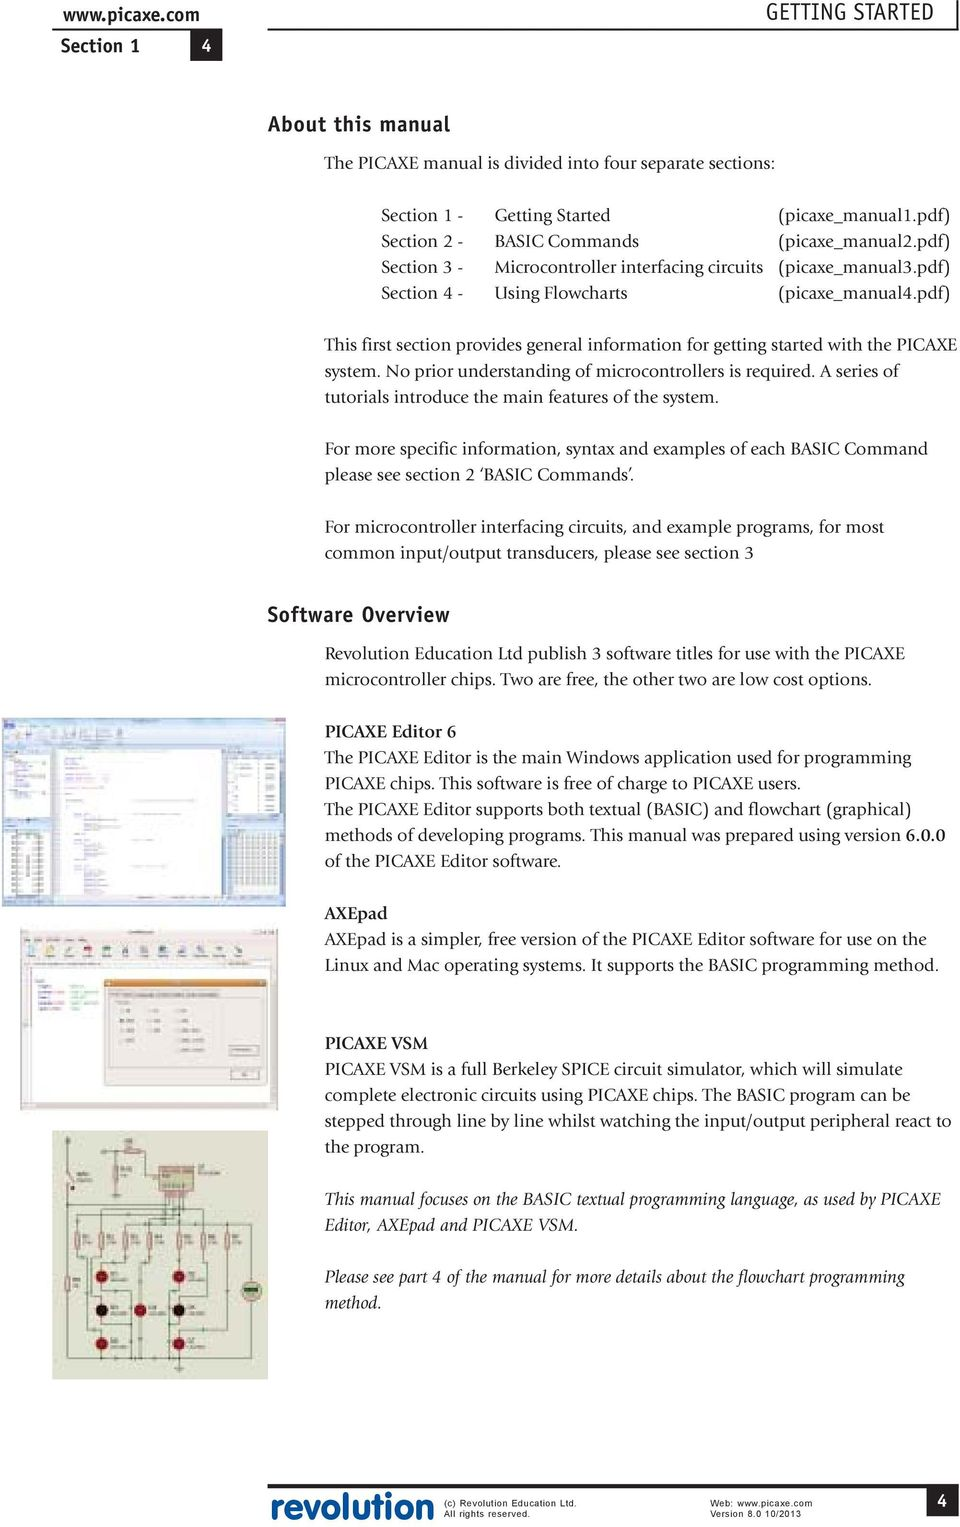 Picaxe Manual Pdf Free Circuit Simulation Software This First Section Provides General Information For Getting Started With The System